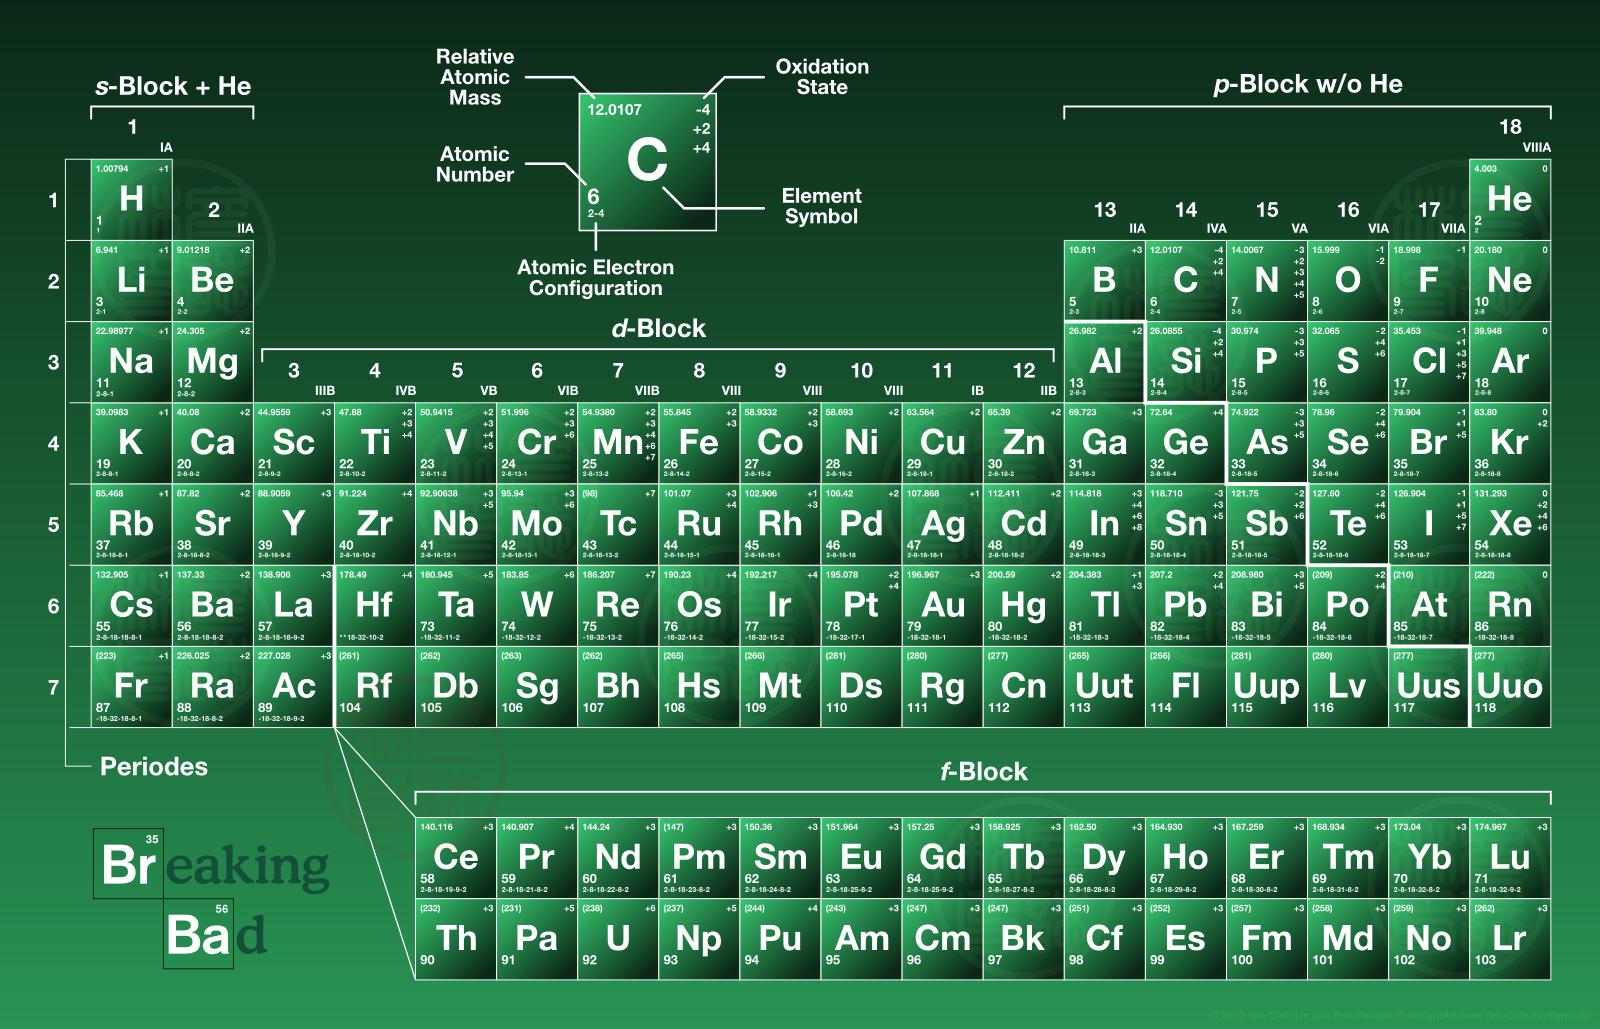 New breaking bad periodic table name generator android periodic breaking bad generator table periodic name android name generator bad age table periodic bad breaking breaking gamestrikefo Image collections